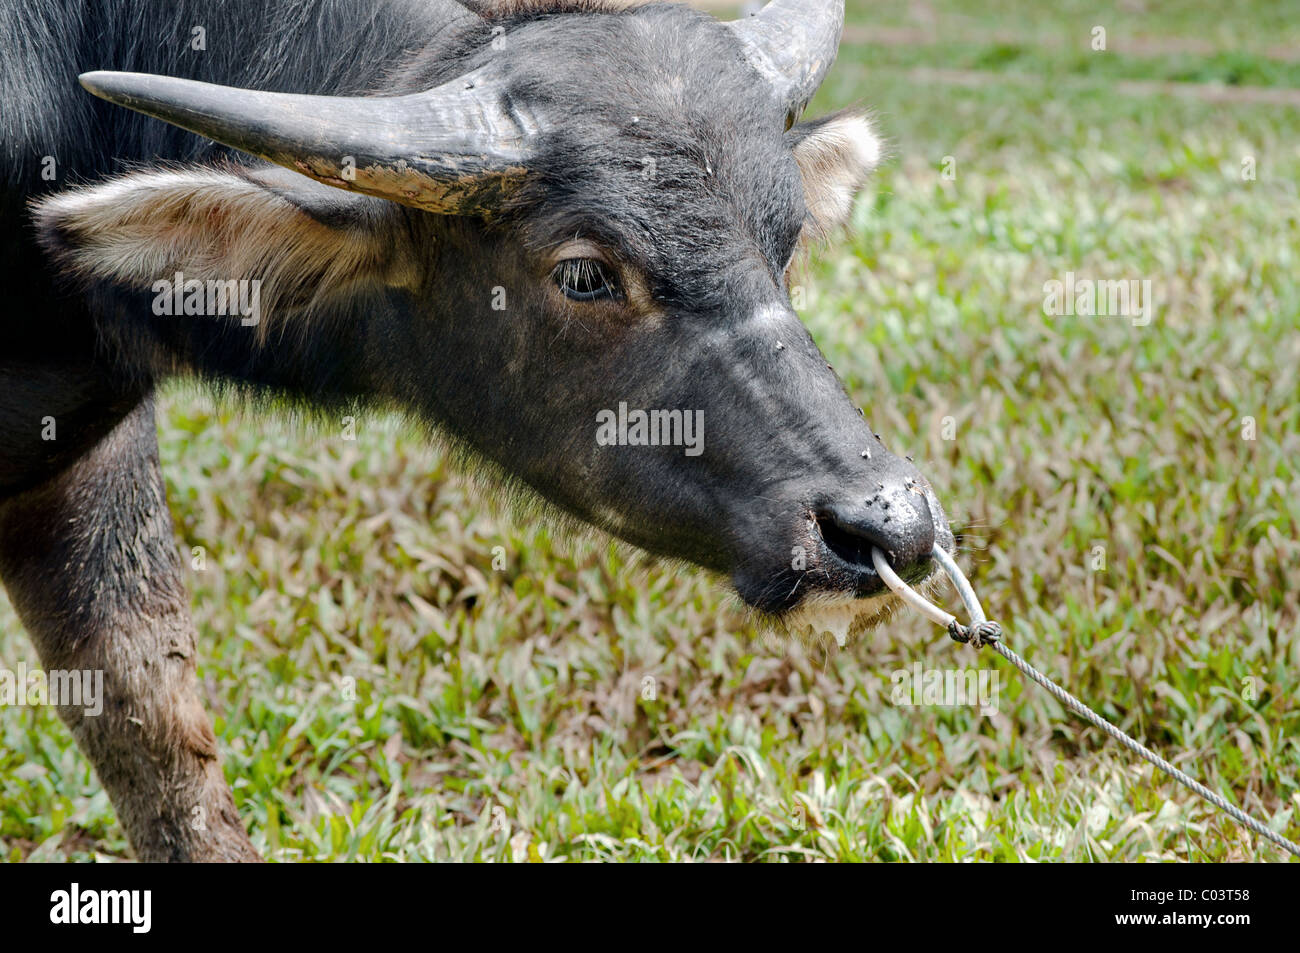 Tied Indonesian Buffalo trying to get free - Stock Image